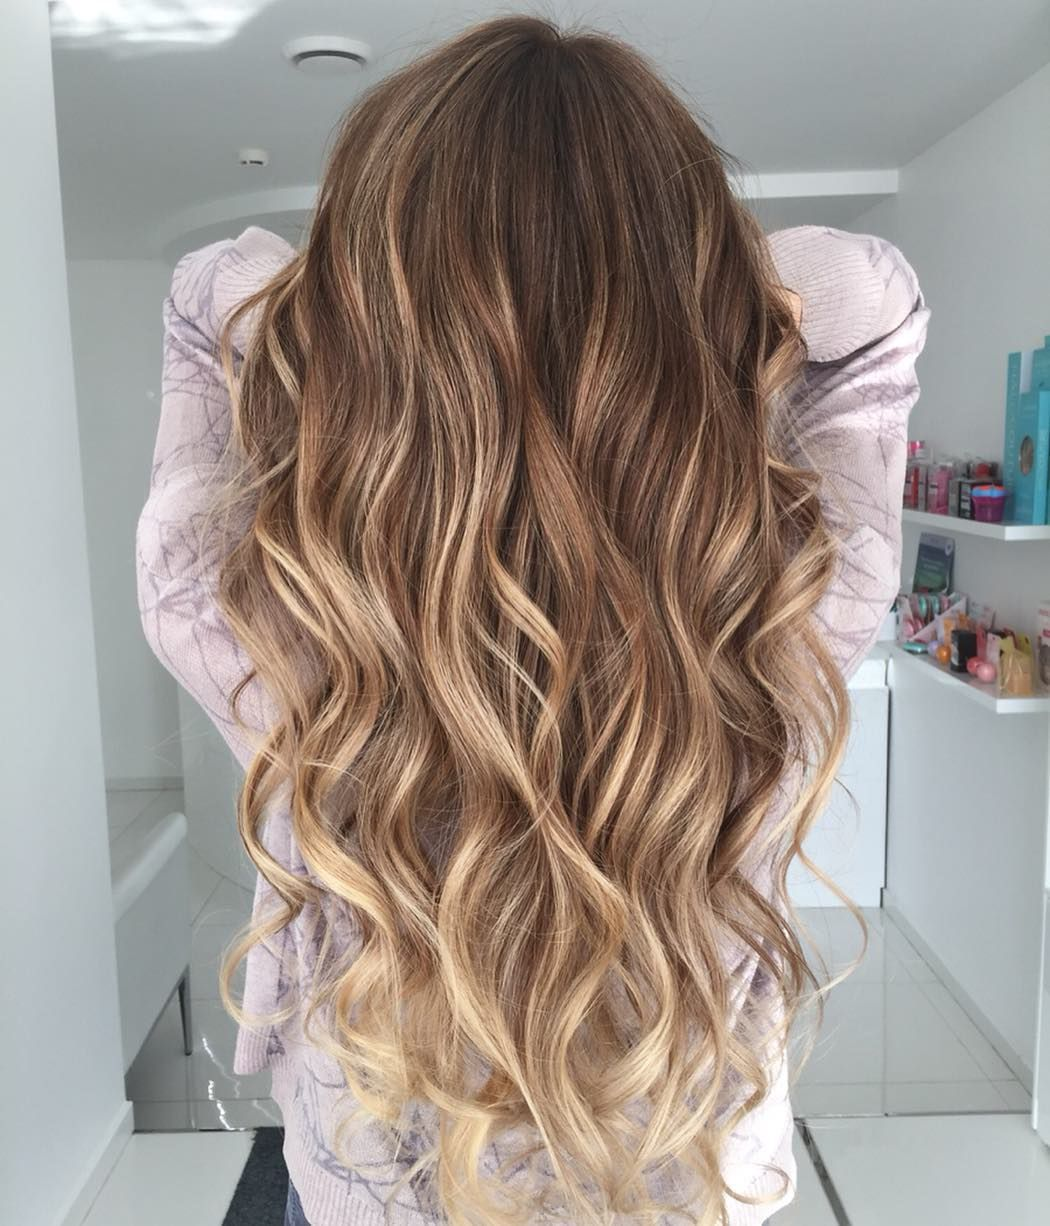 Looking For A More Subtle Bronde Ask For This Bronde Blends Ombre Look Bring Pictures To Your